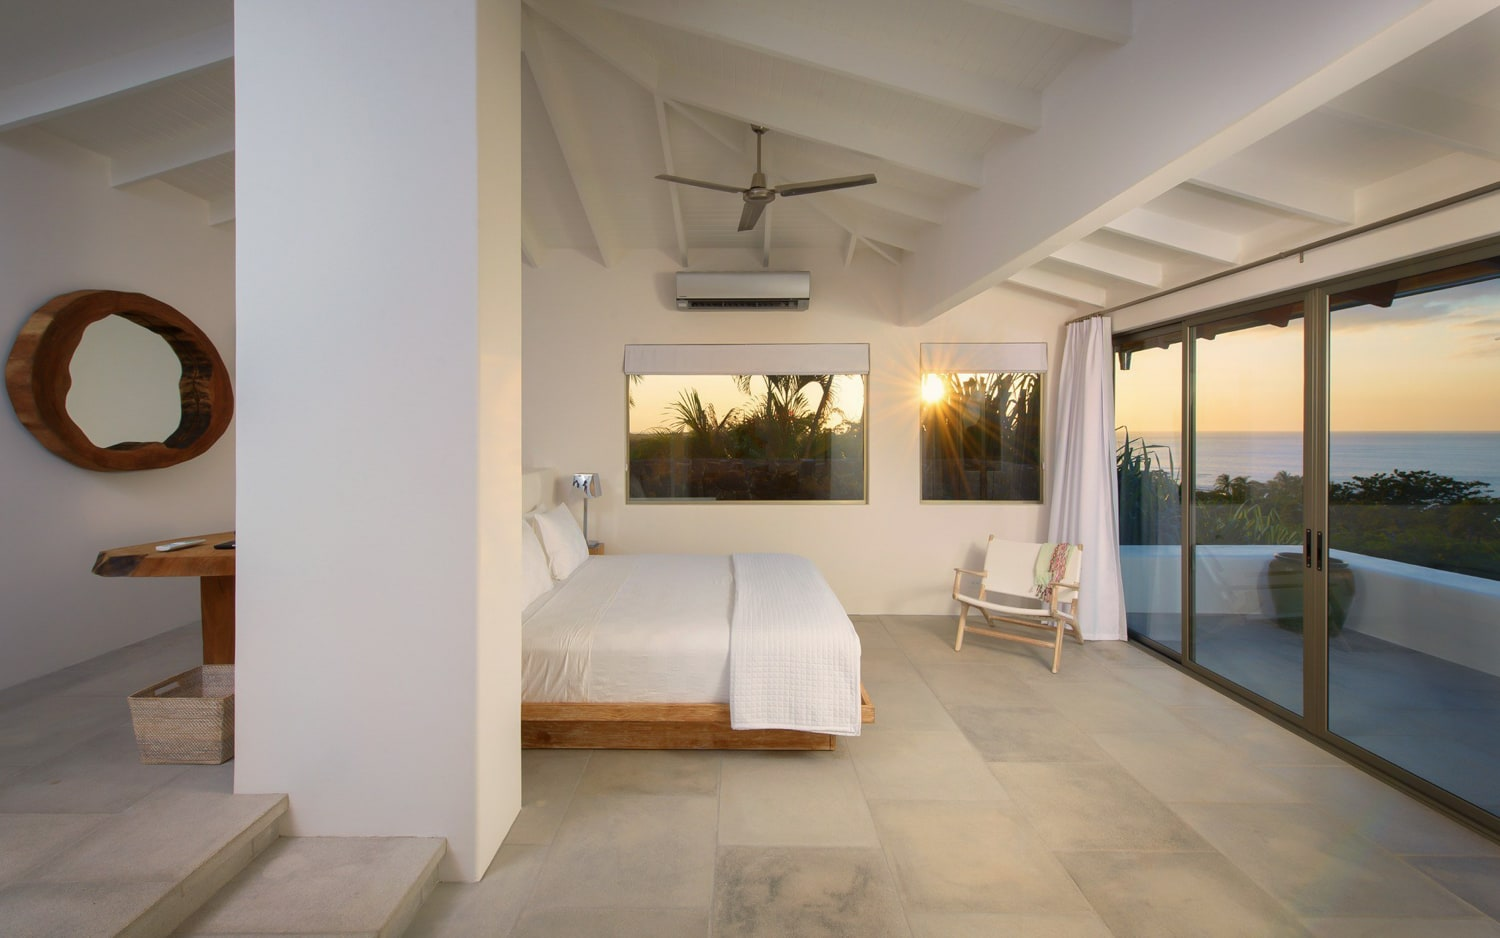 Luxury master suite with ocean view for couples on their wedding night.